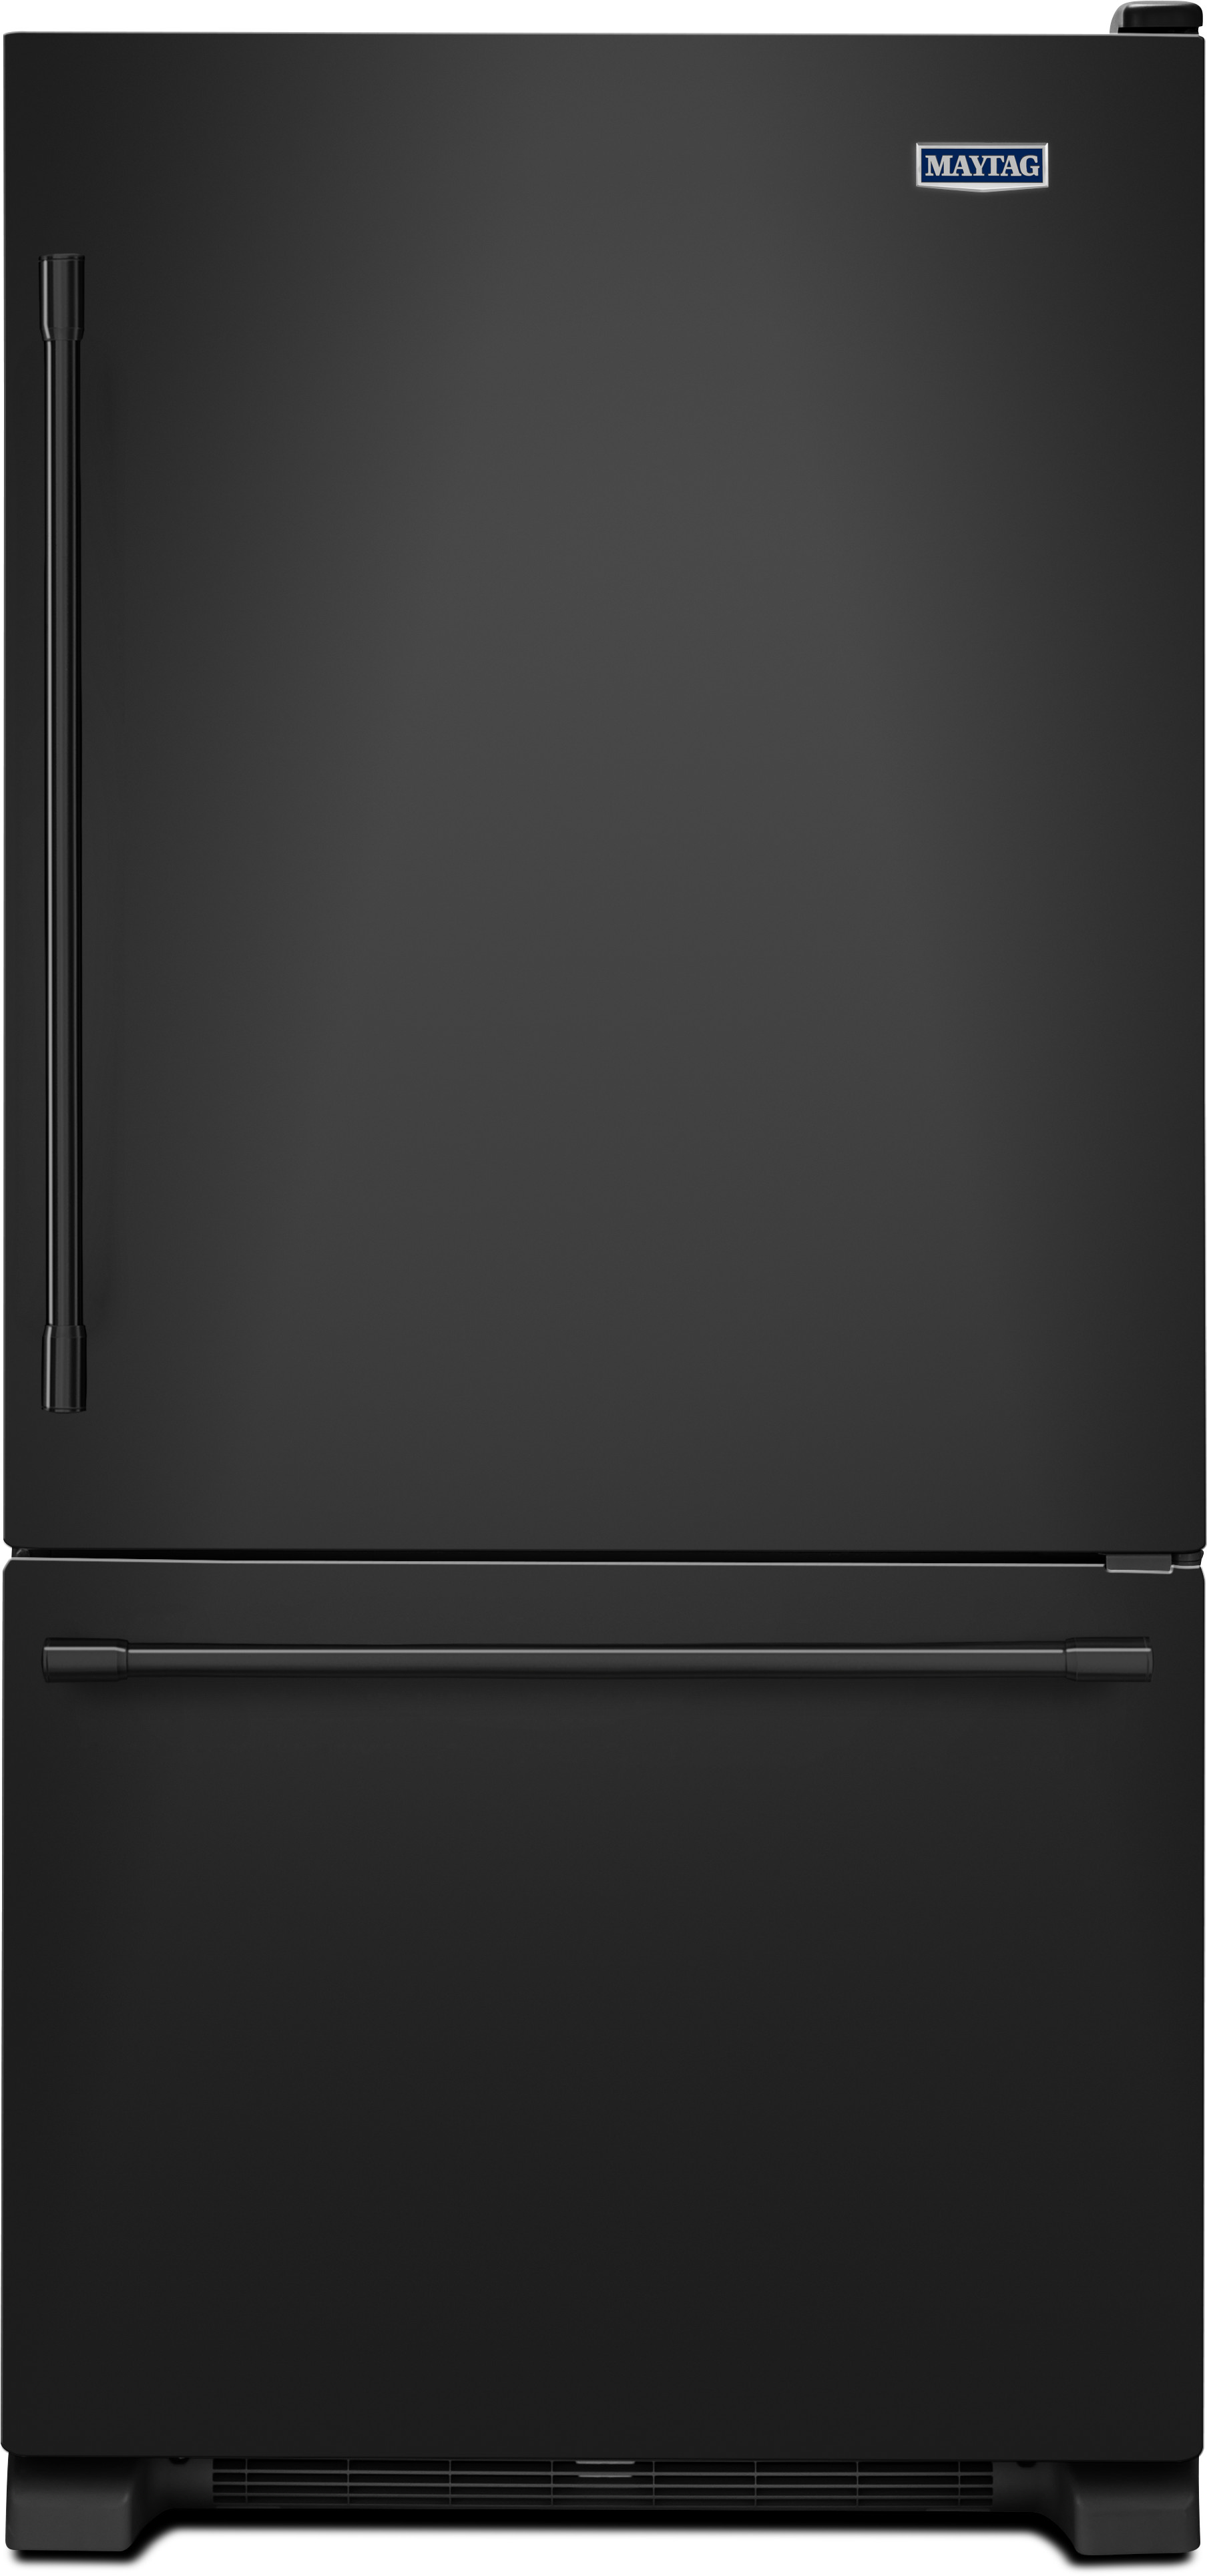 Buy a maytag refrigerator in black white stainless steel rubansaba